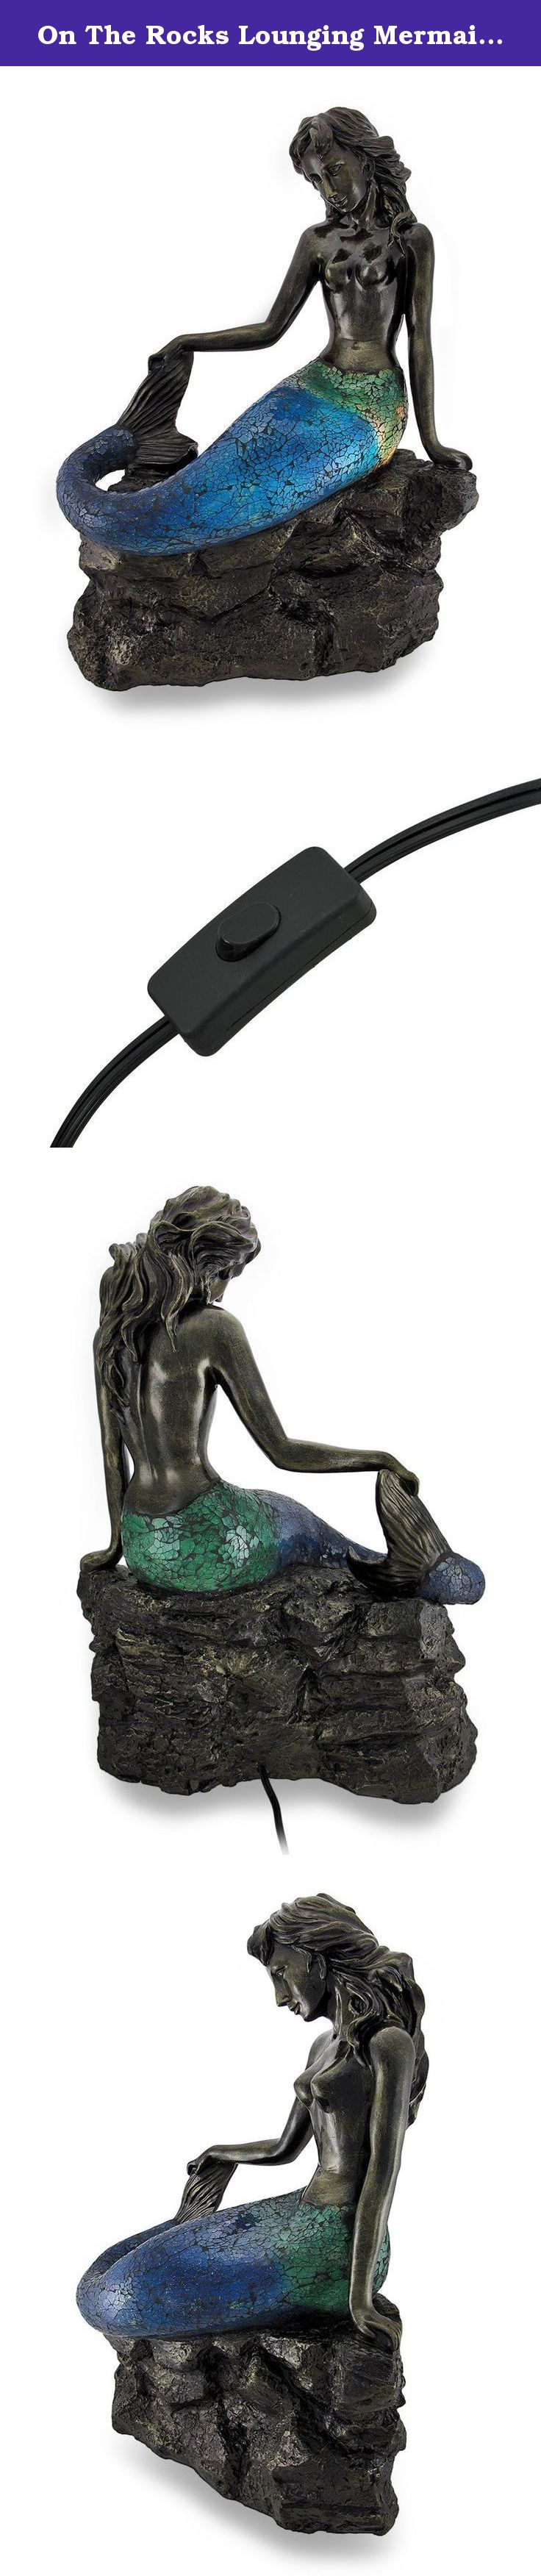 Mermaid accent lamp - On The Rocks Lounging Mermaid Crackled Glass Accent Lamp This Pretty Polished Crackled Glass Mermaid